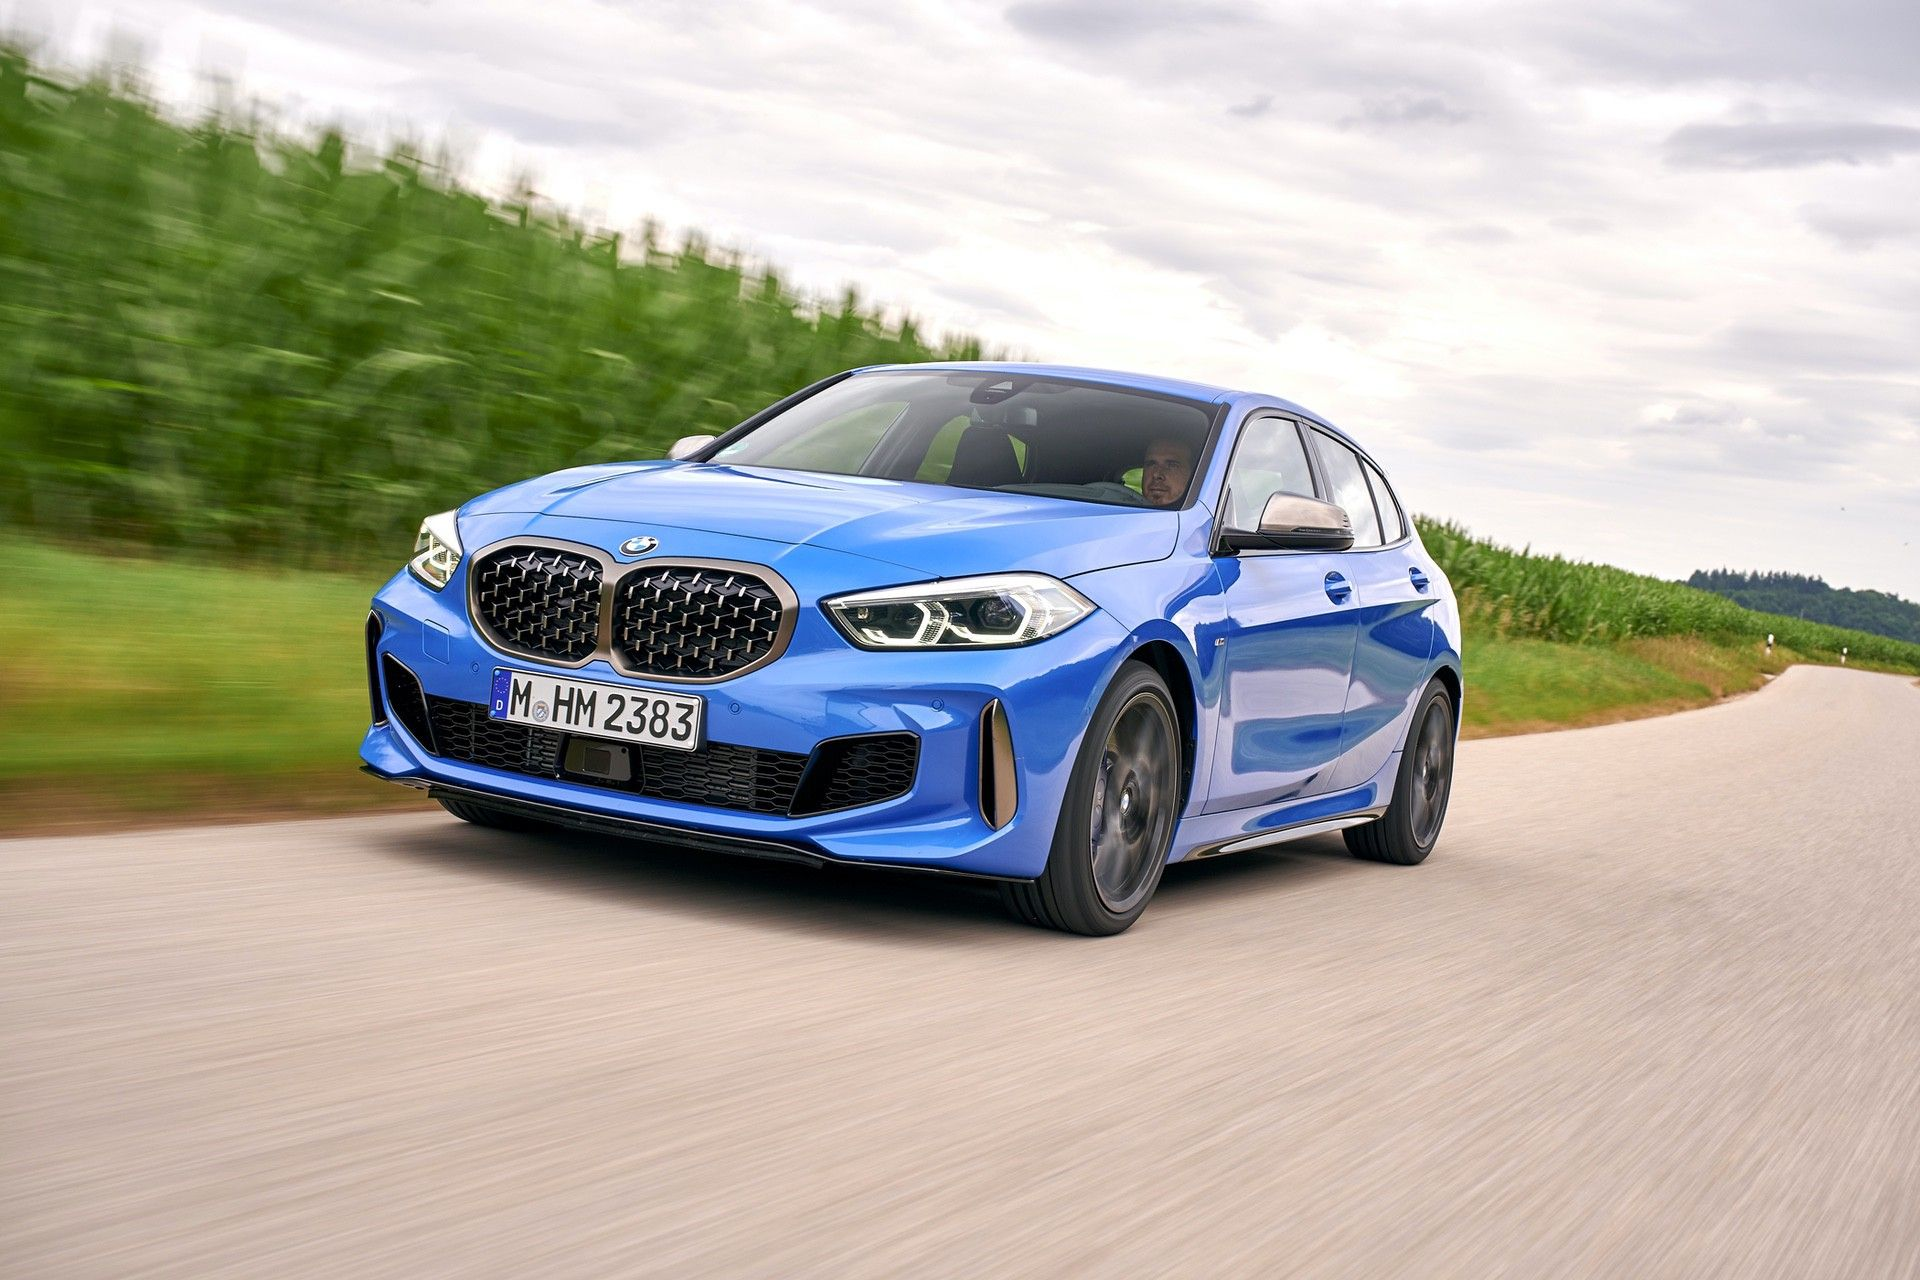 2020 Bmw M140e Could Be Bavaria S First Hybrid Hot Hatch Bmw New Bmw Performance Cars